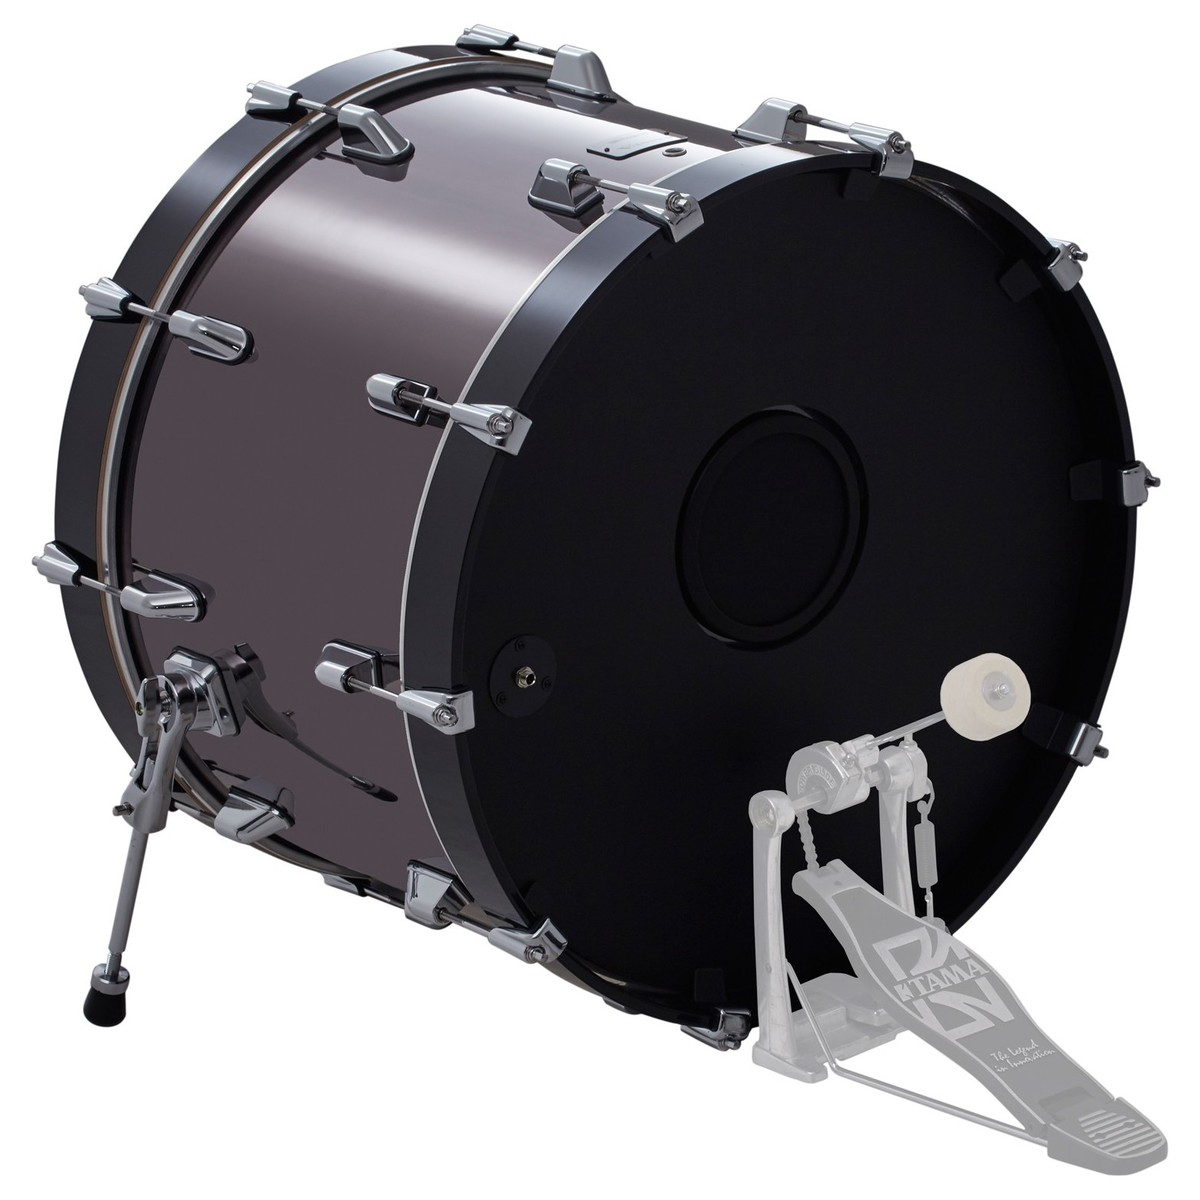 roland td 50kvx v drums pro electronic drum kit at gear4music. Black Bedroom Furniture Sets. Home Design Ideas